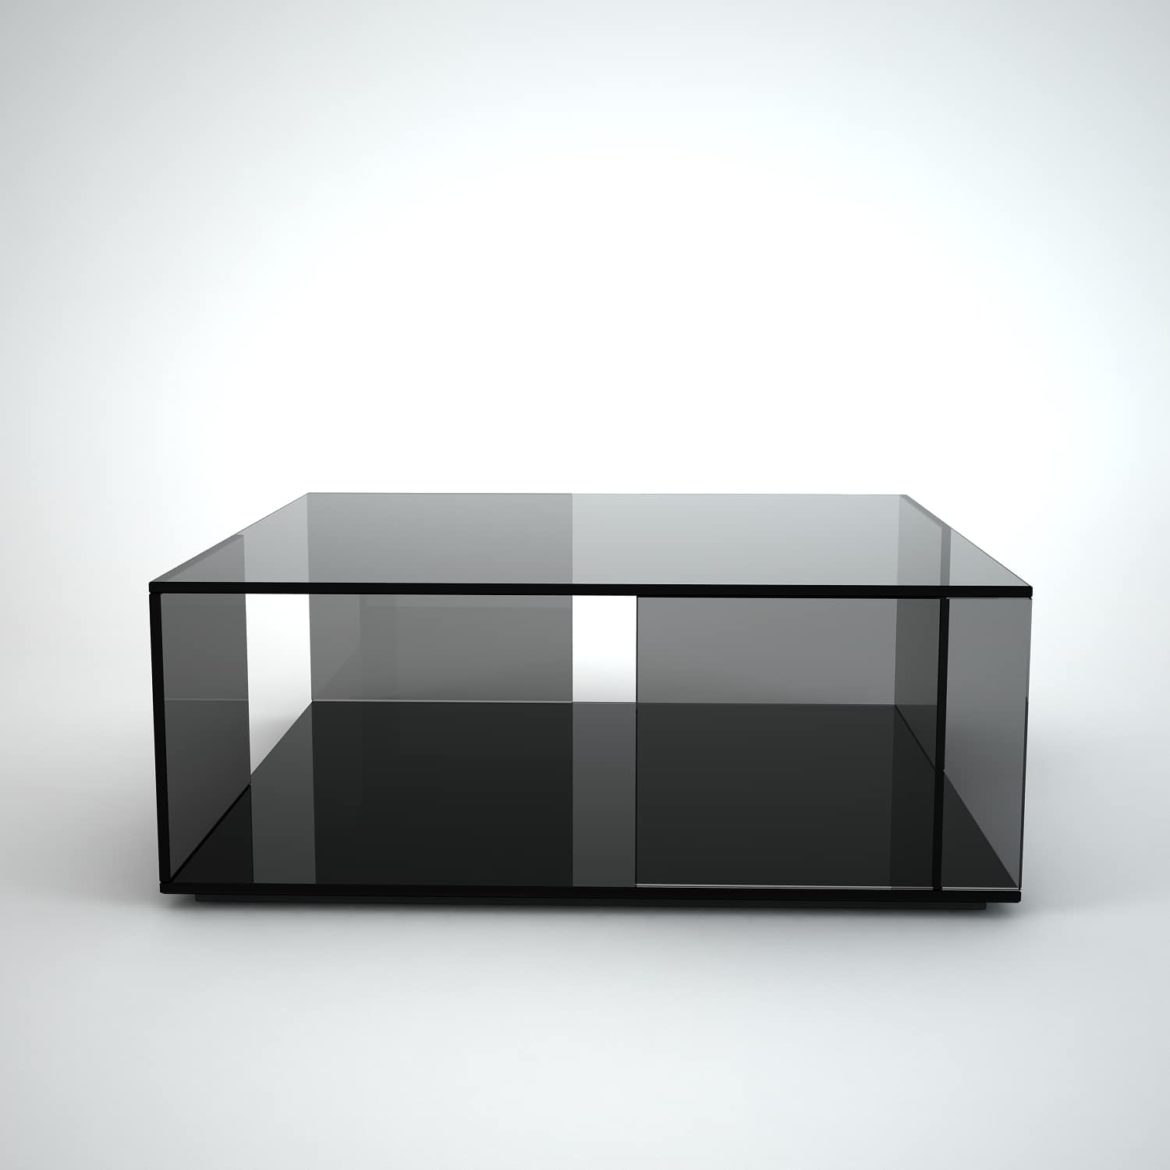 tifinno-square black glass coffee table